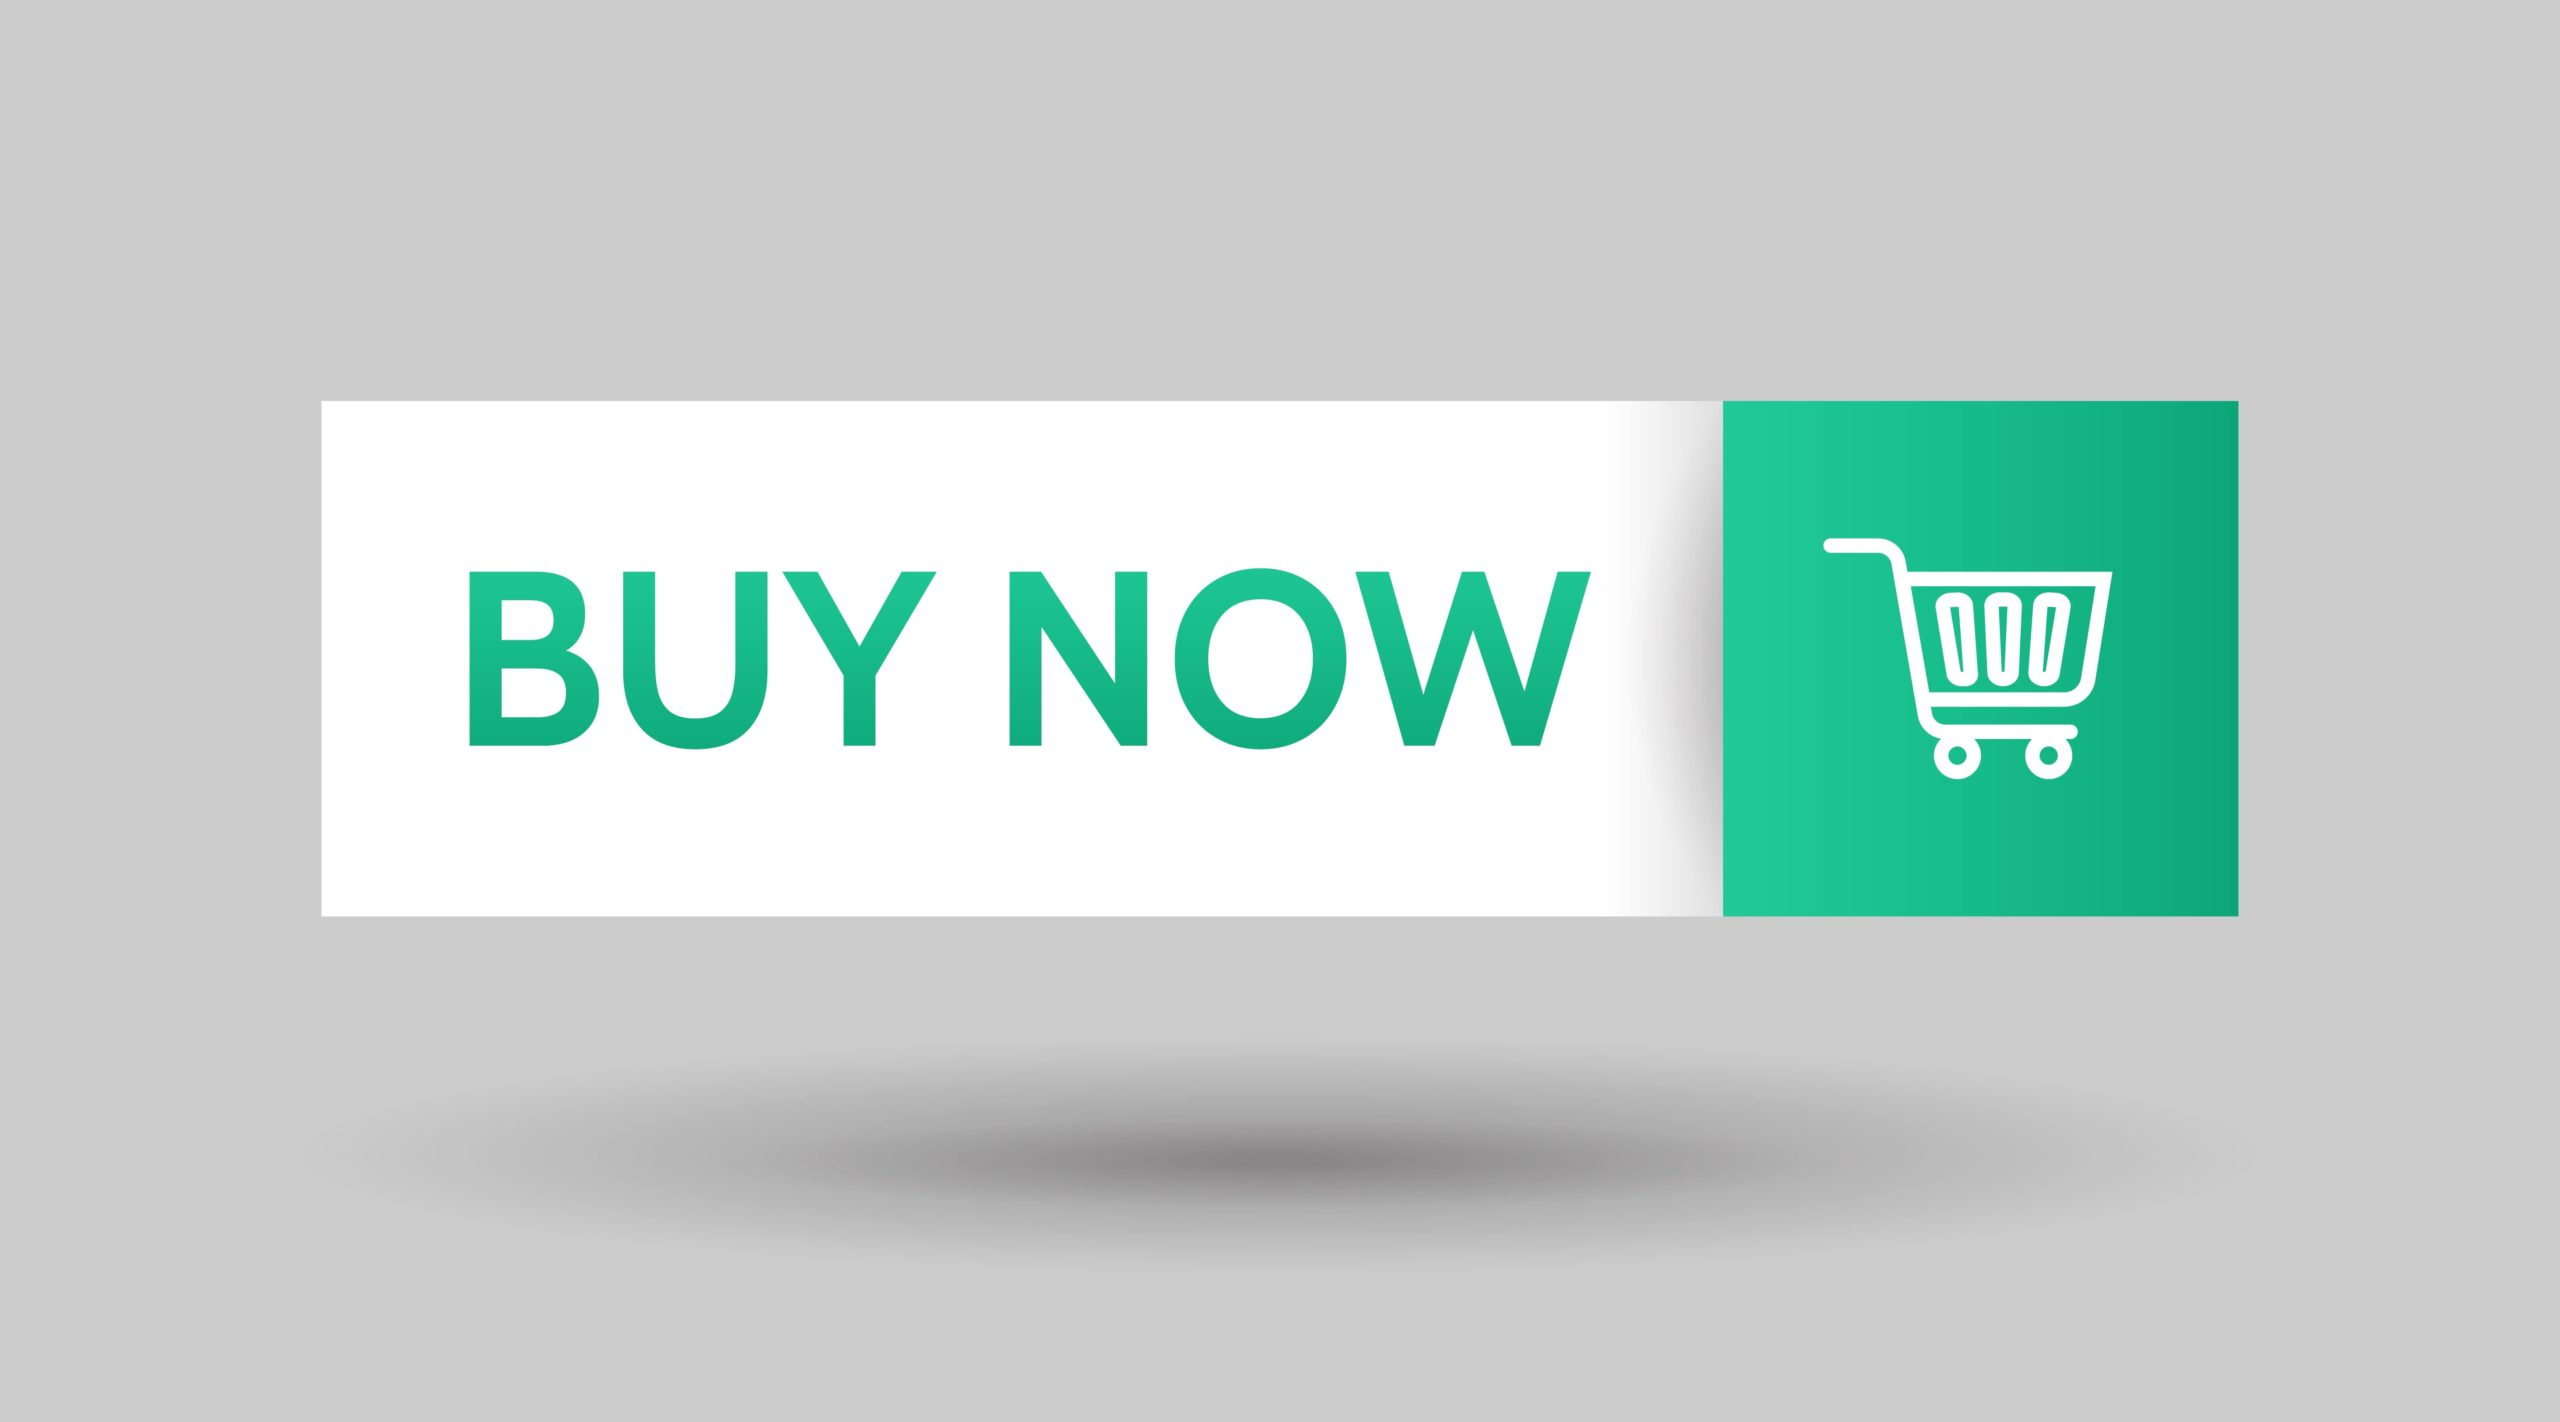 How to change the name of the 'BUY IT NOW' button on the product page in the Minimal Theme